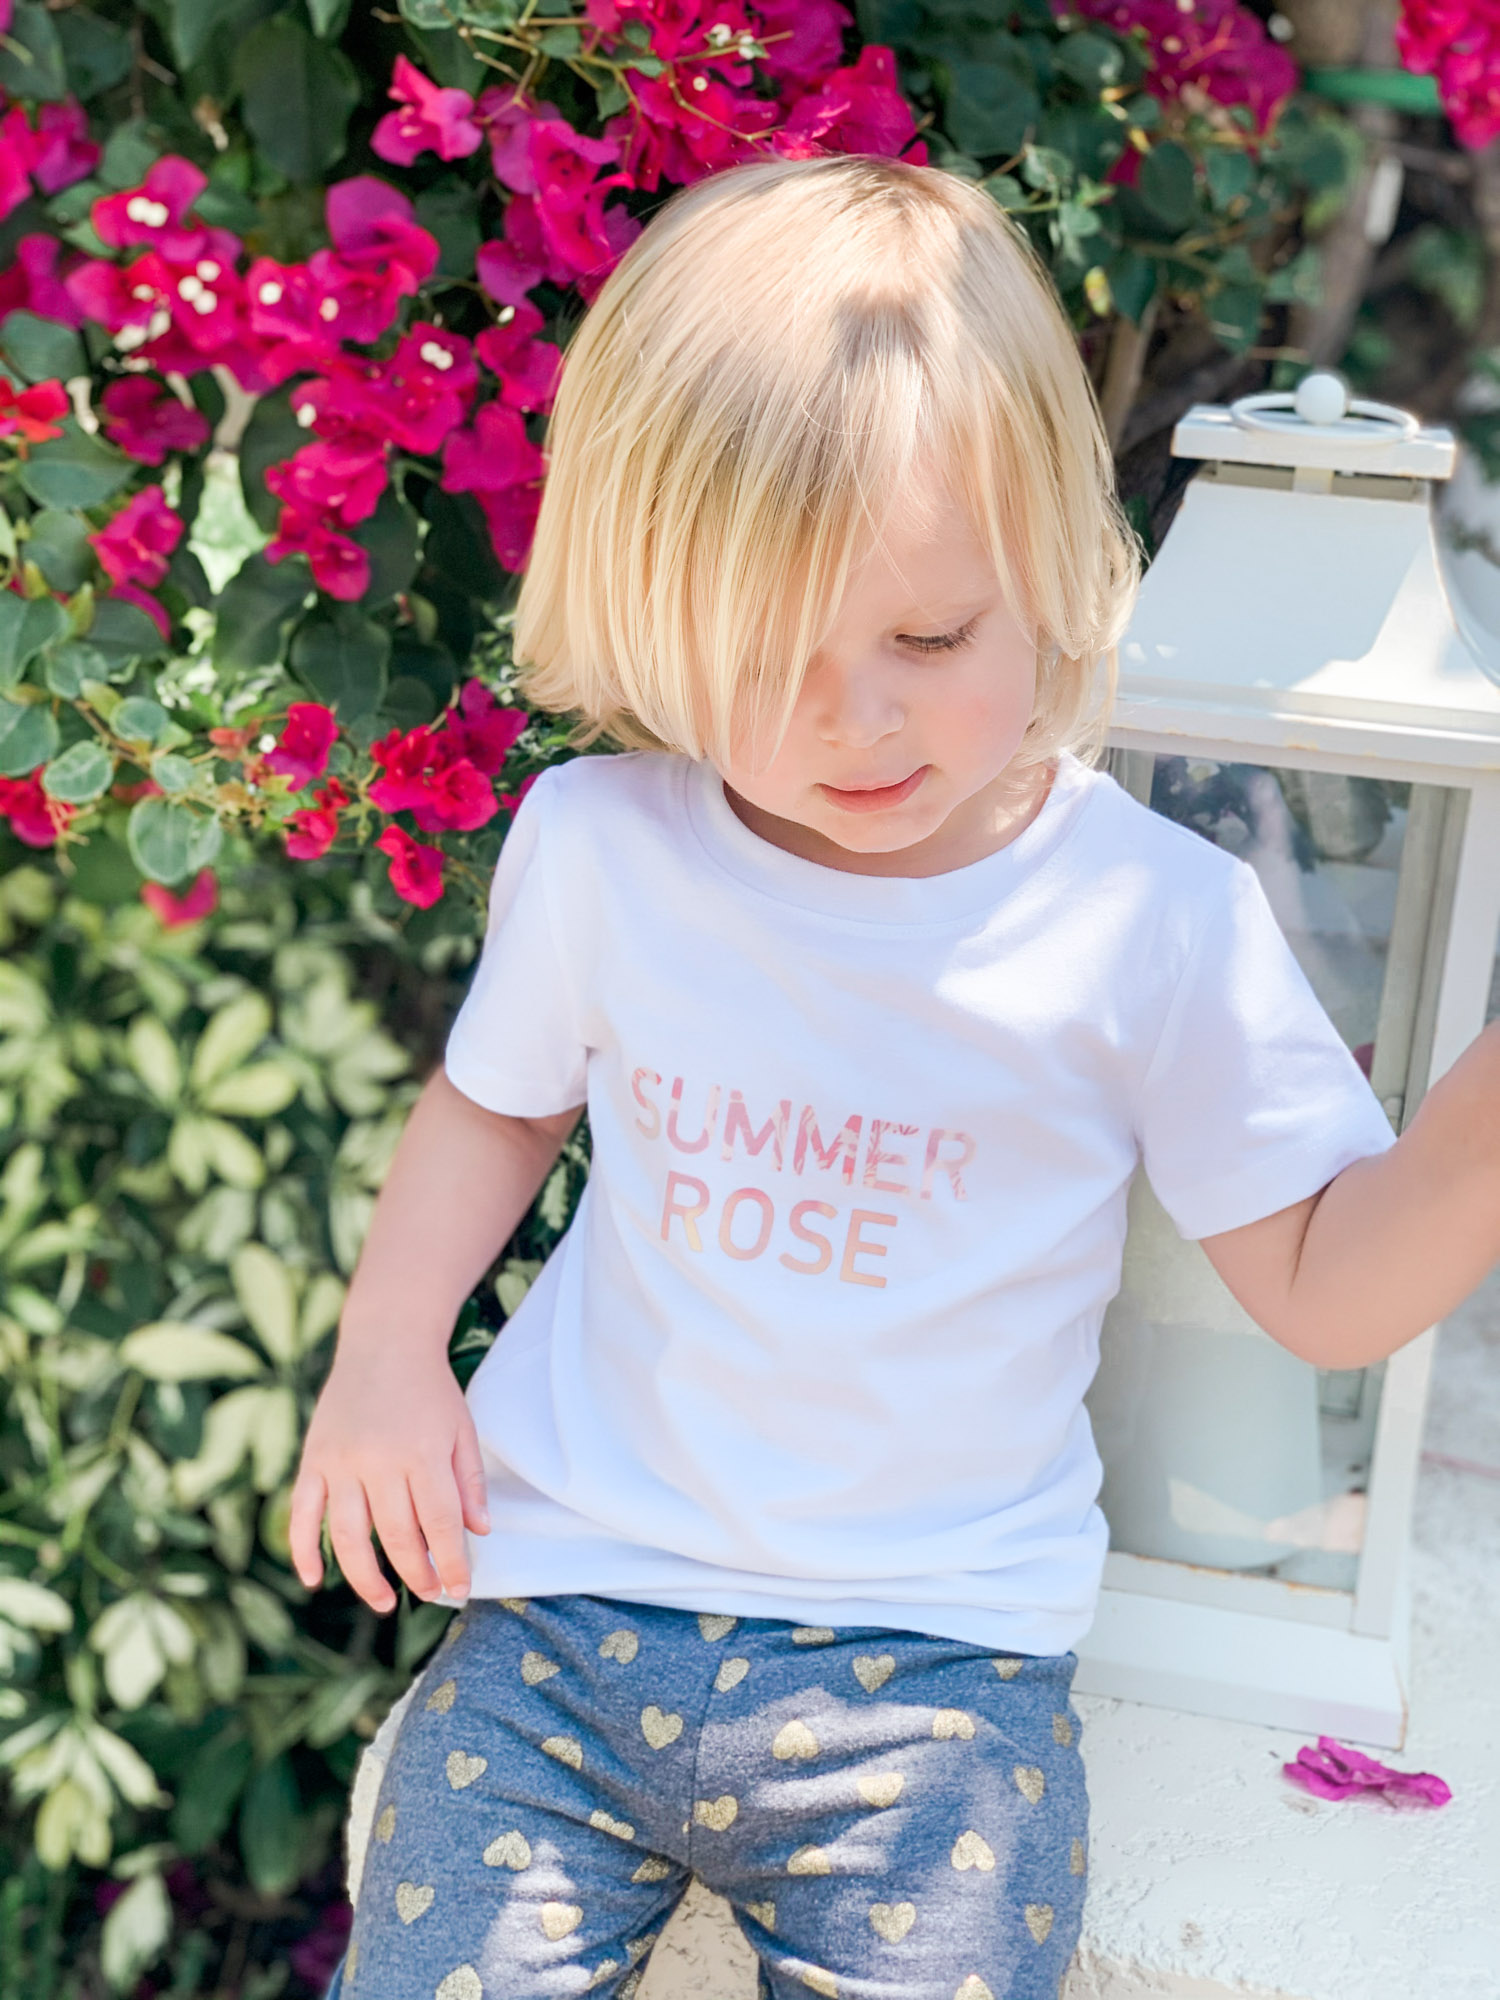 How to make DIY watercolor custom shirts with kids names with this easy Cricut Joy tutorial from Orlando lifestyle blogger Ashley Brooke Nicholas.